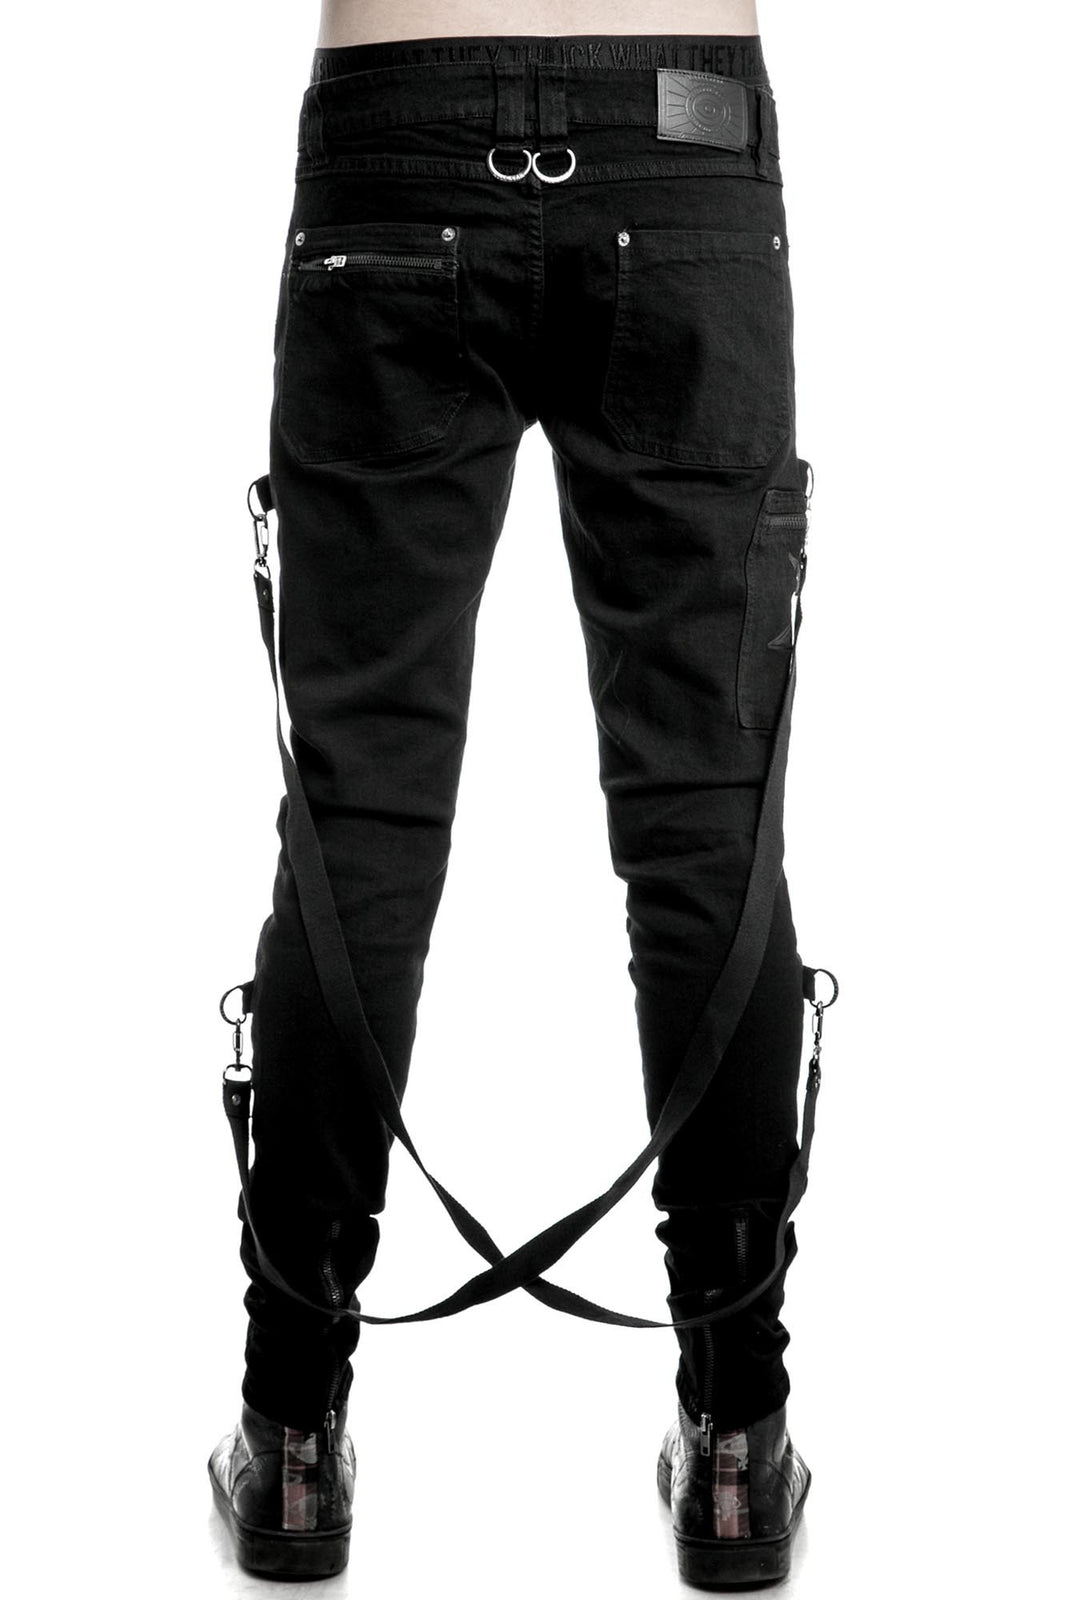 Death Trap Bondage Trousers [B]